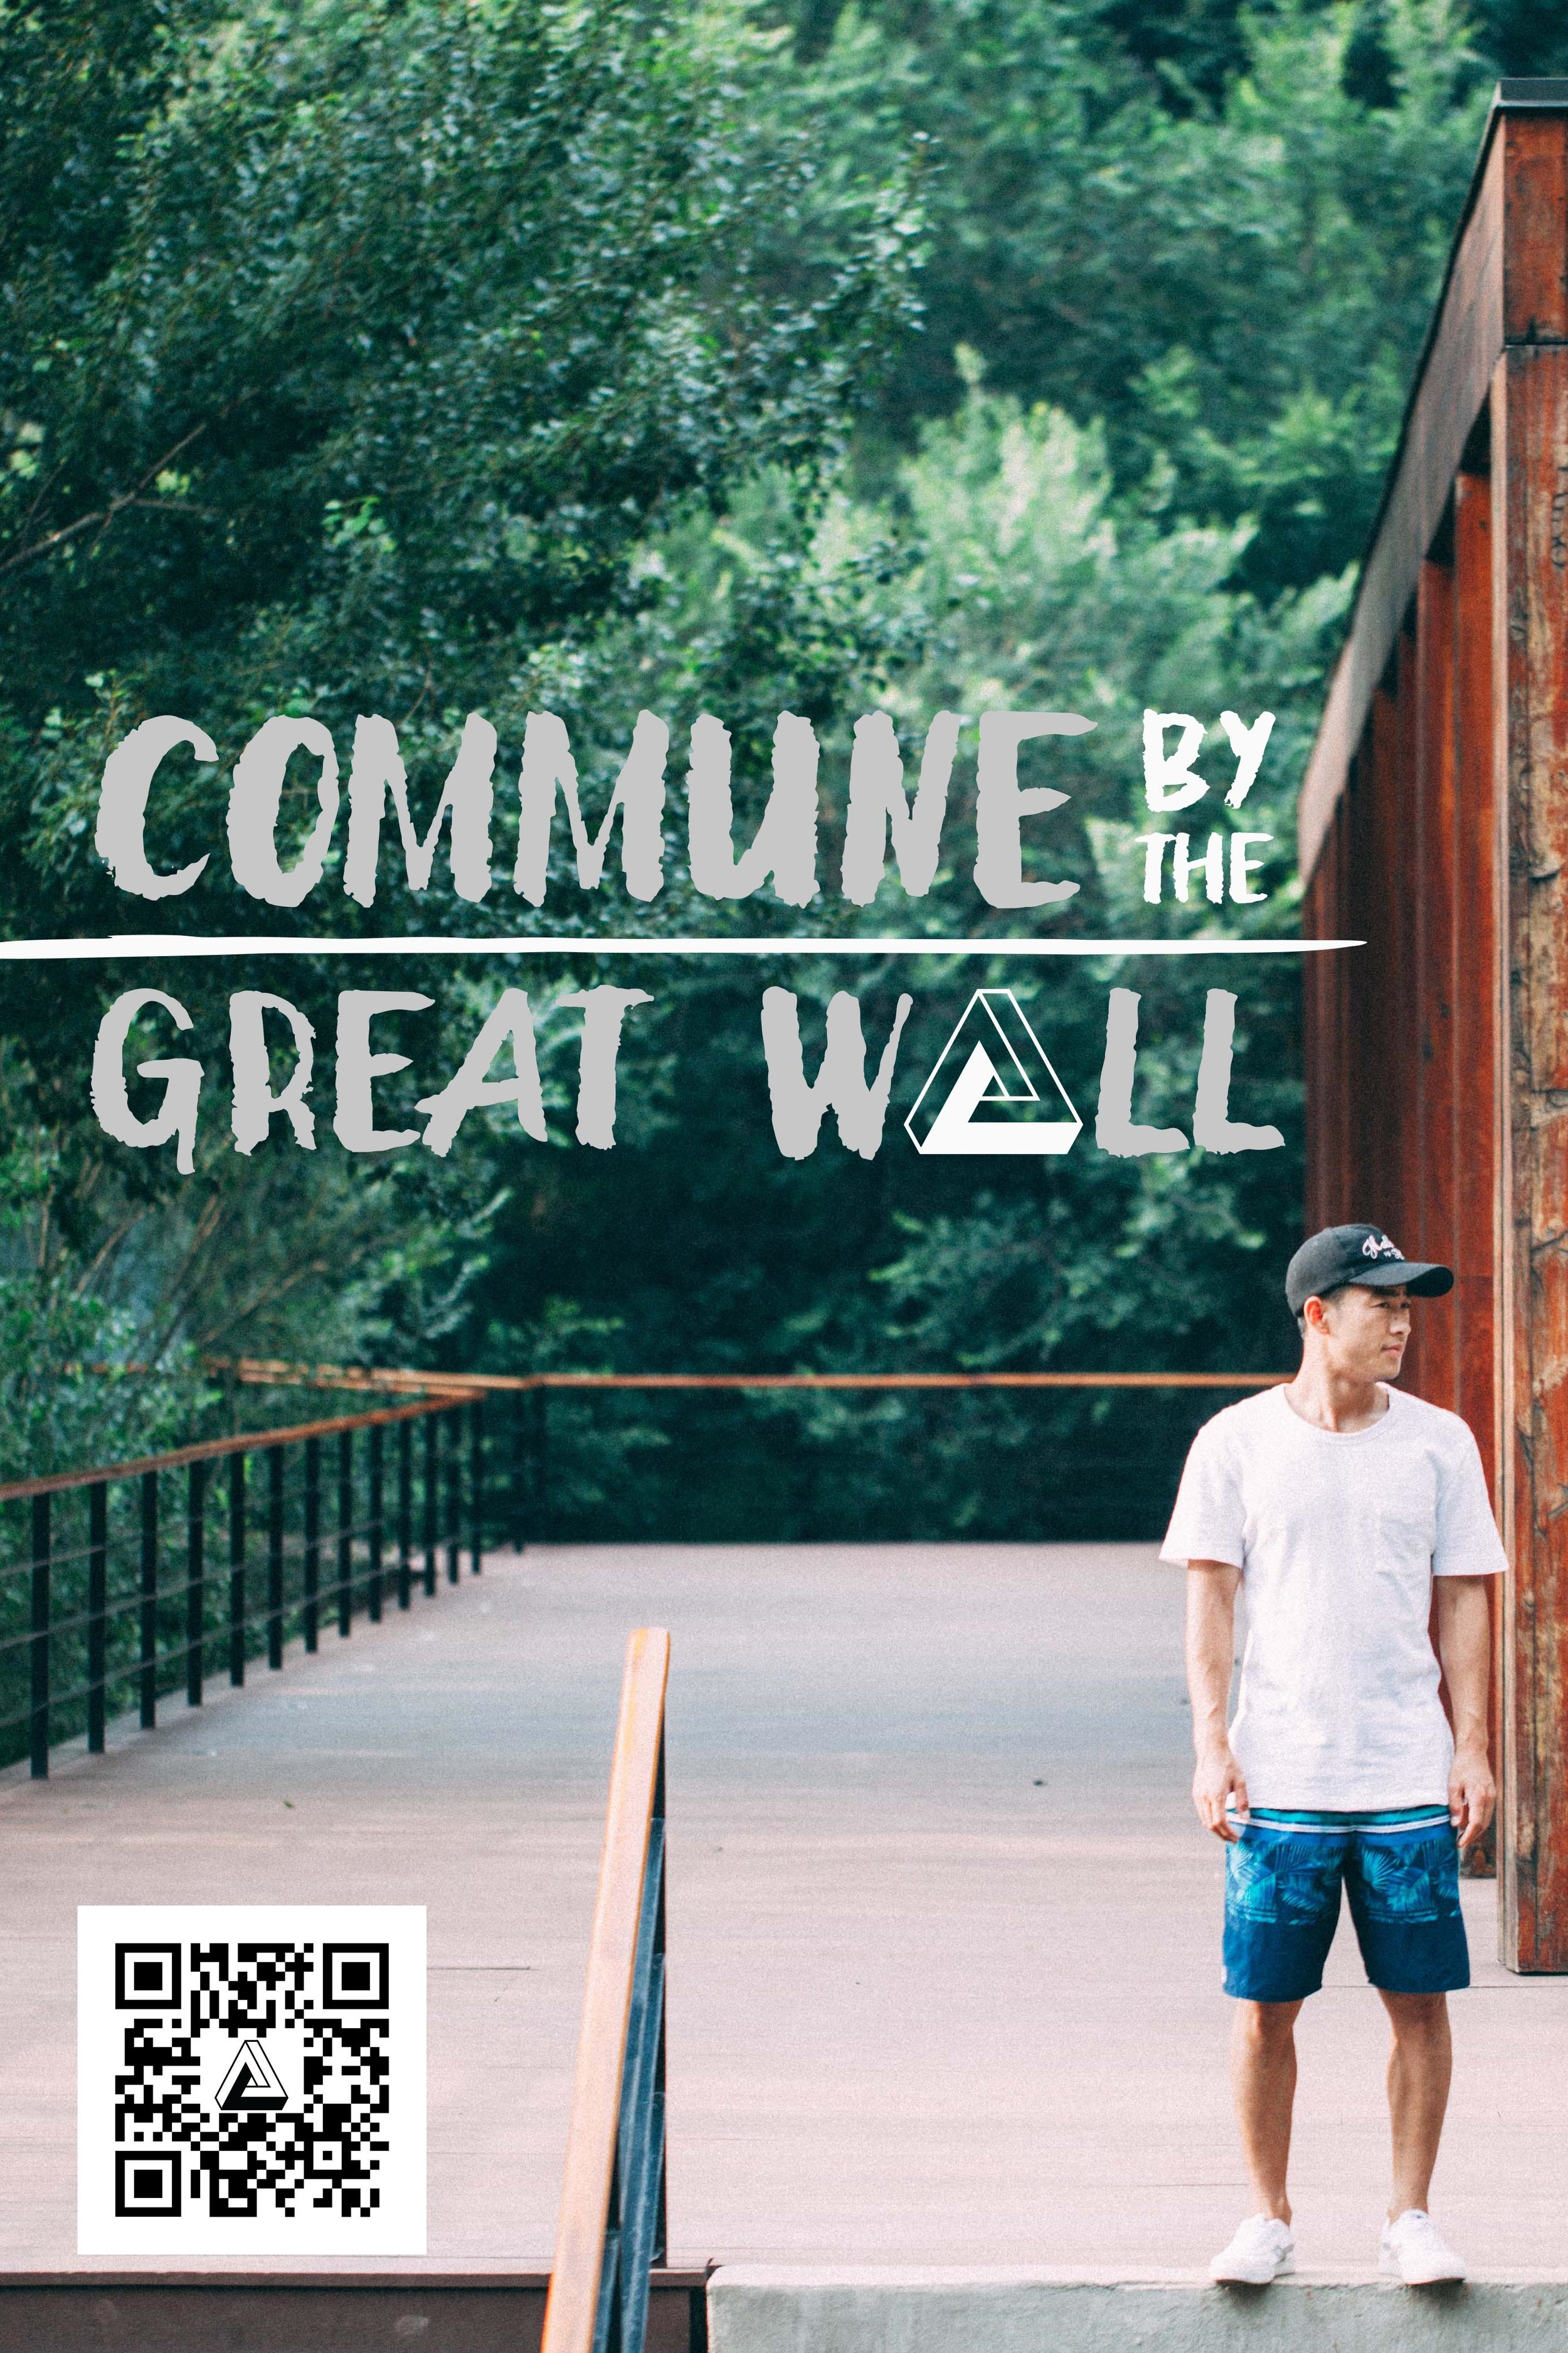 COMMUNE BY THE GREAT WALL - The first hotel I ever review my staying experience, albeit my numerable visits to hotels worldwide in the past 20 years...